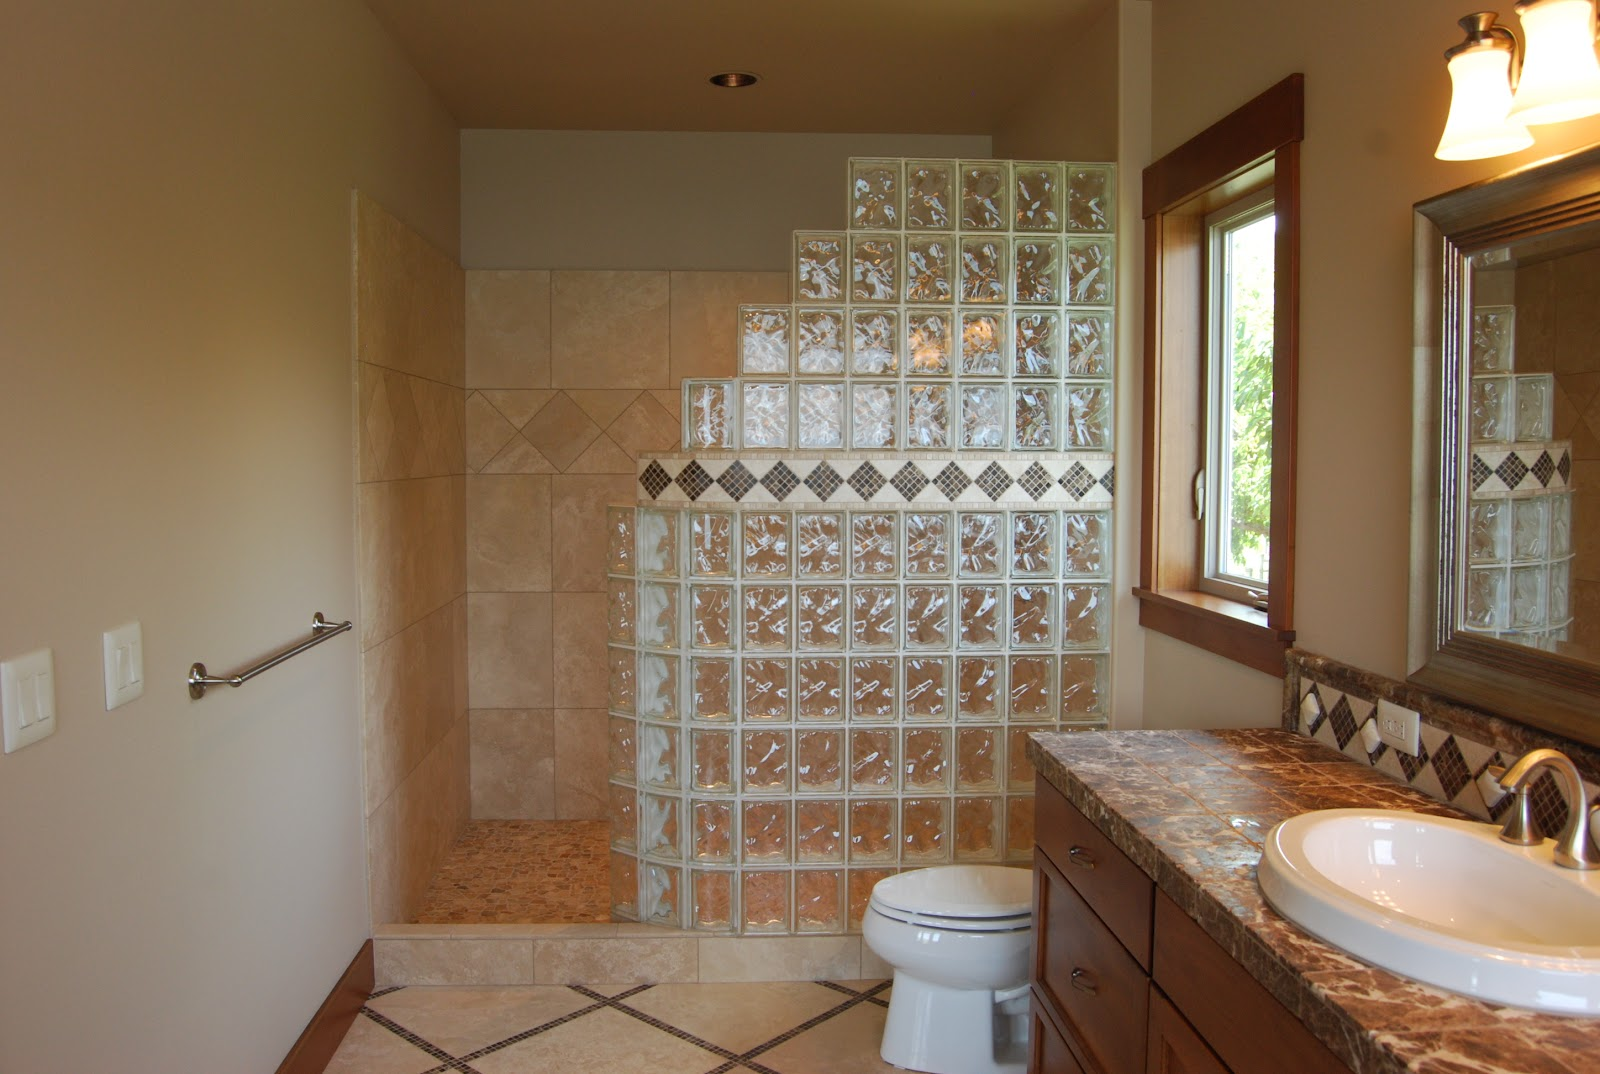 Seattle glass block glass block shower kits install in 4 for Bathroom design kit